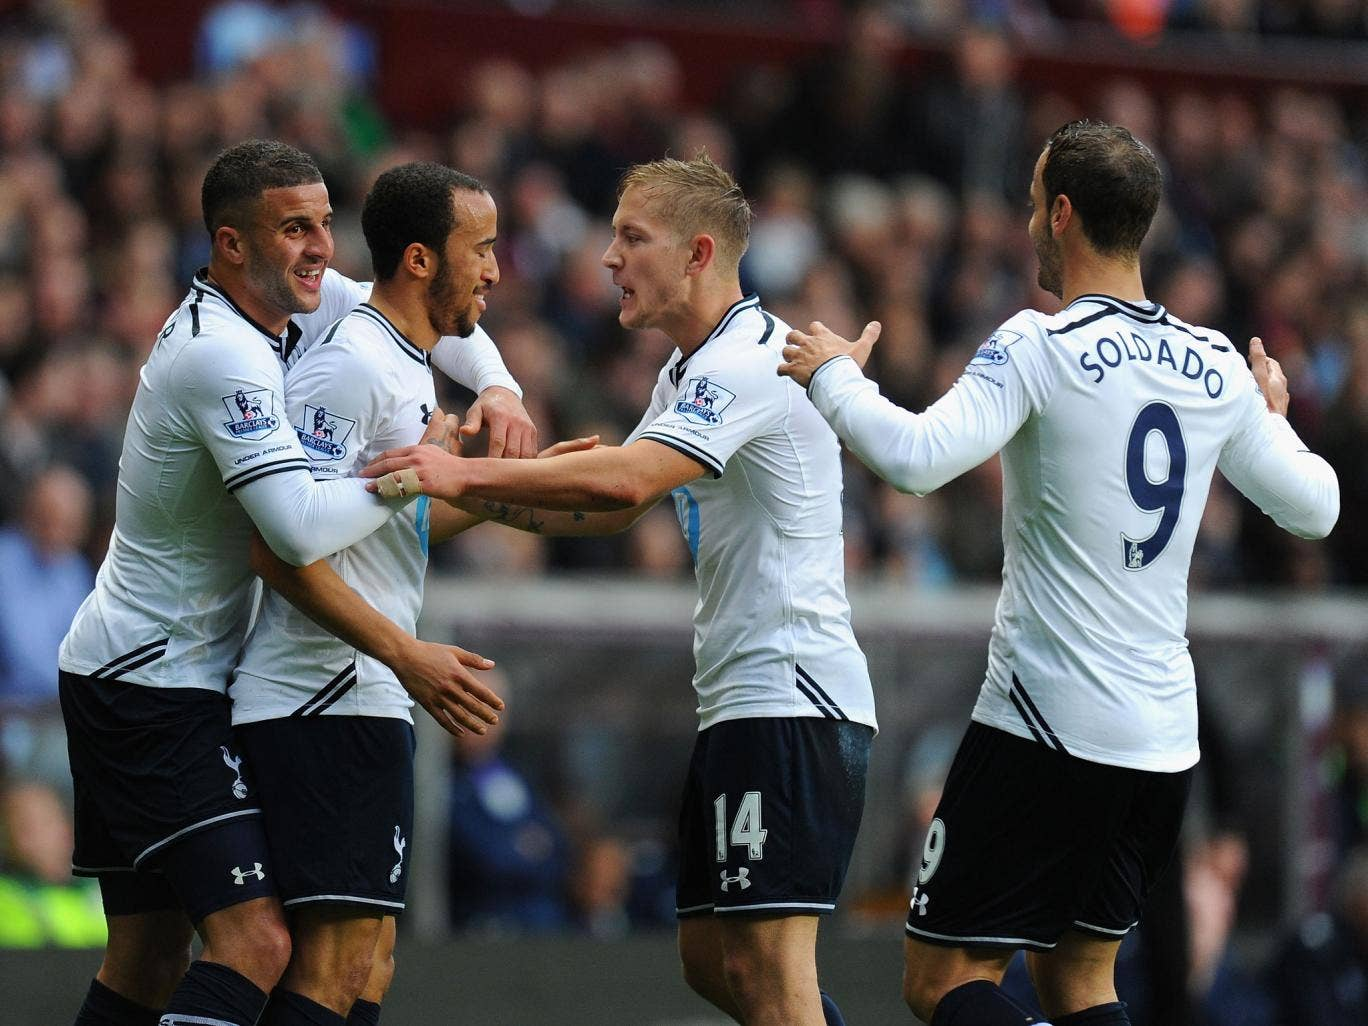 Andros Townsend celebrates with Tottenham team-mates Kyle Walker, Lewis Holtby and Roberto Soldado